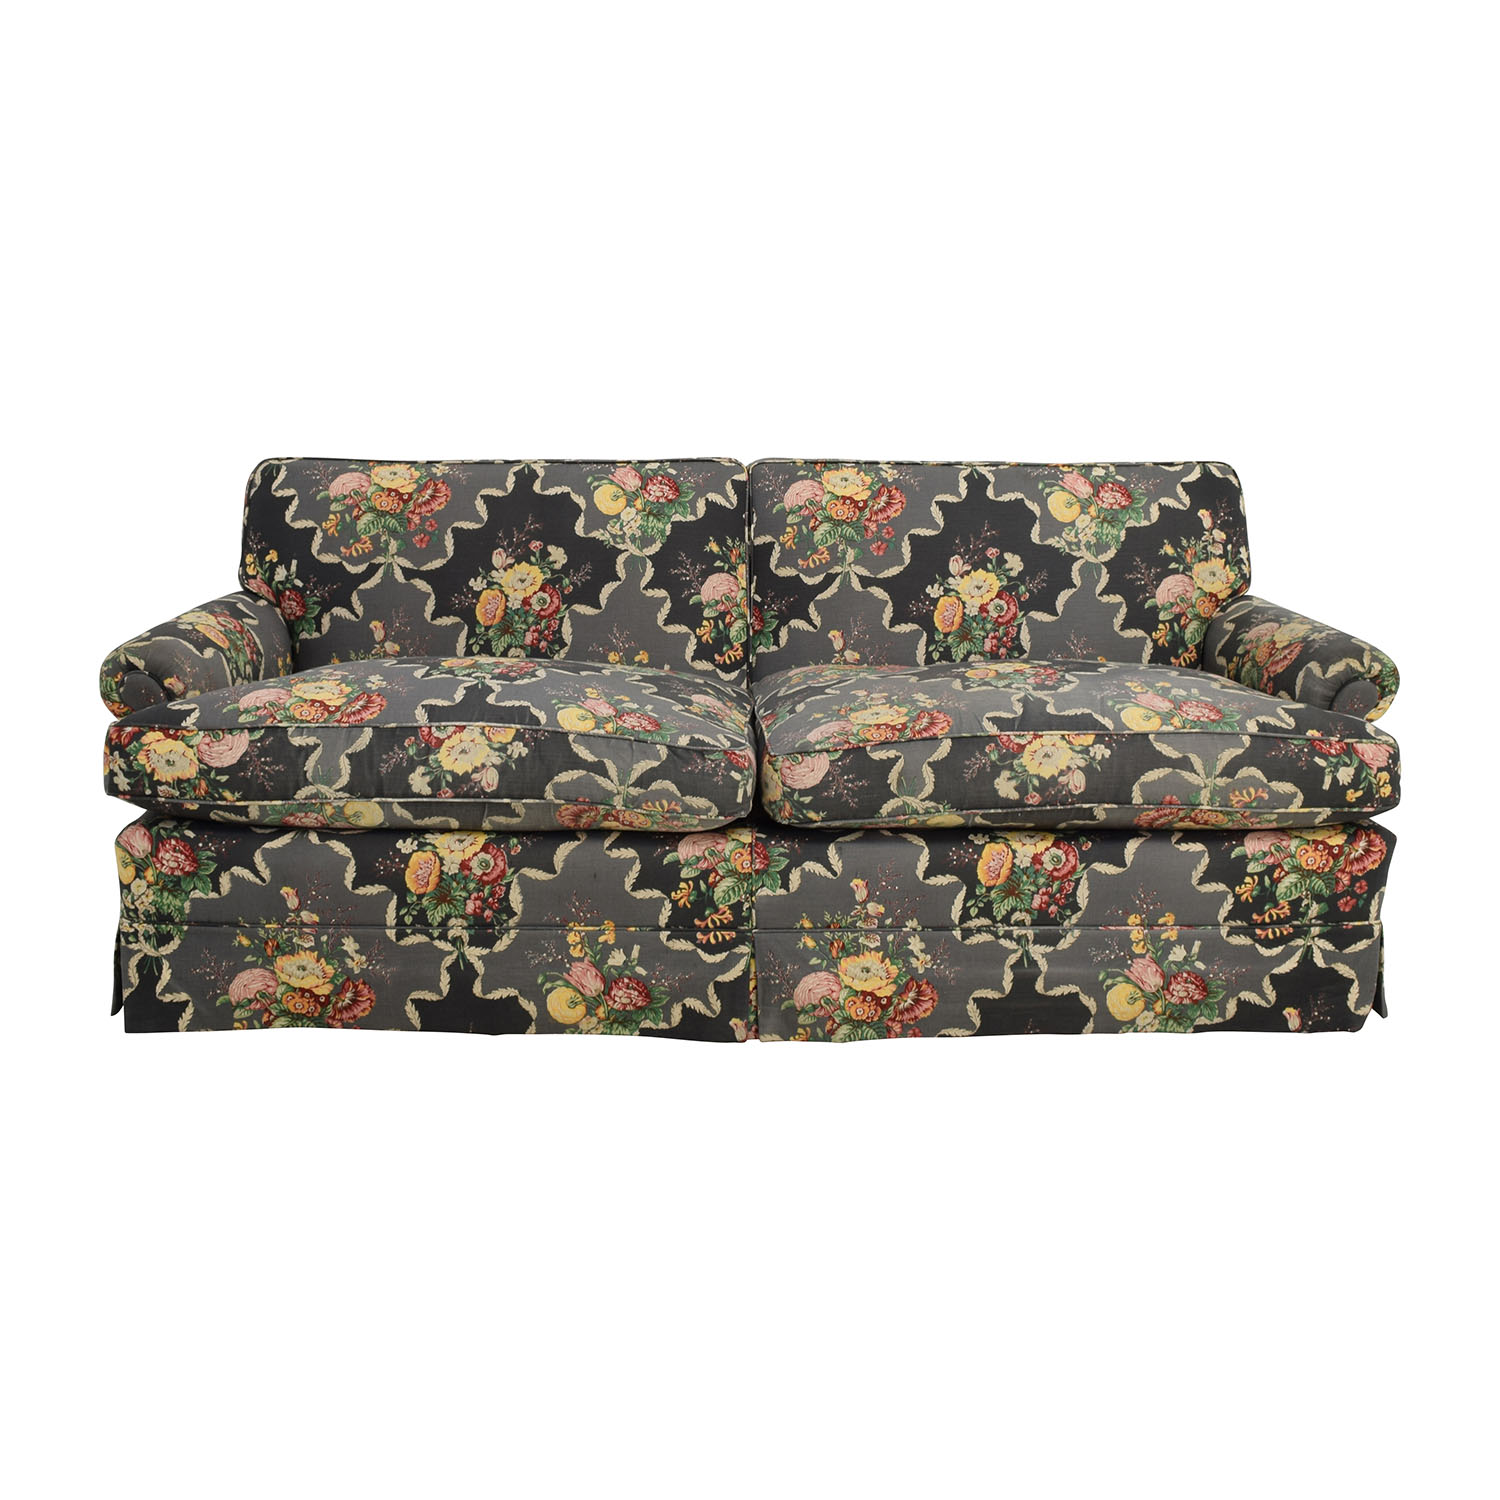 Custom Black Floral Skirted Sofa nj